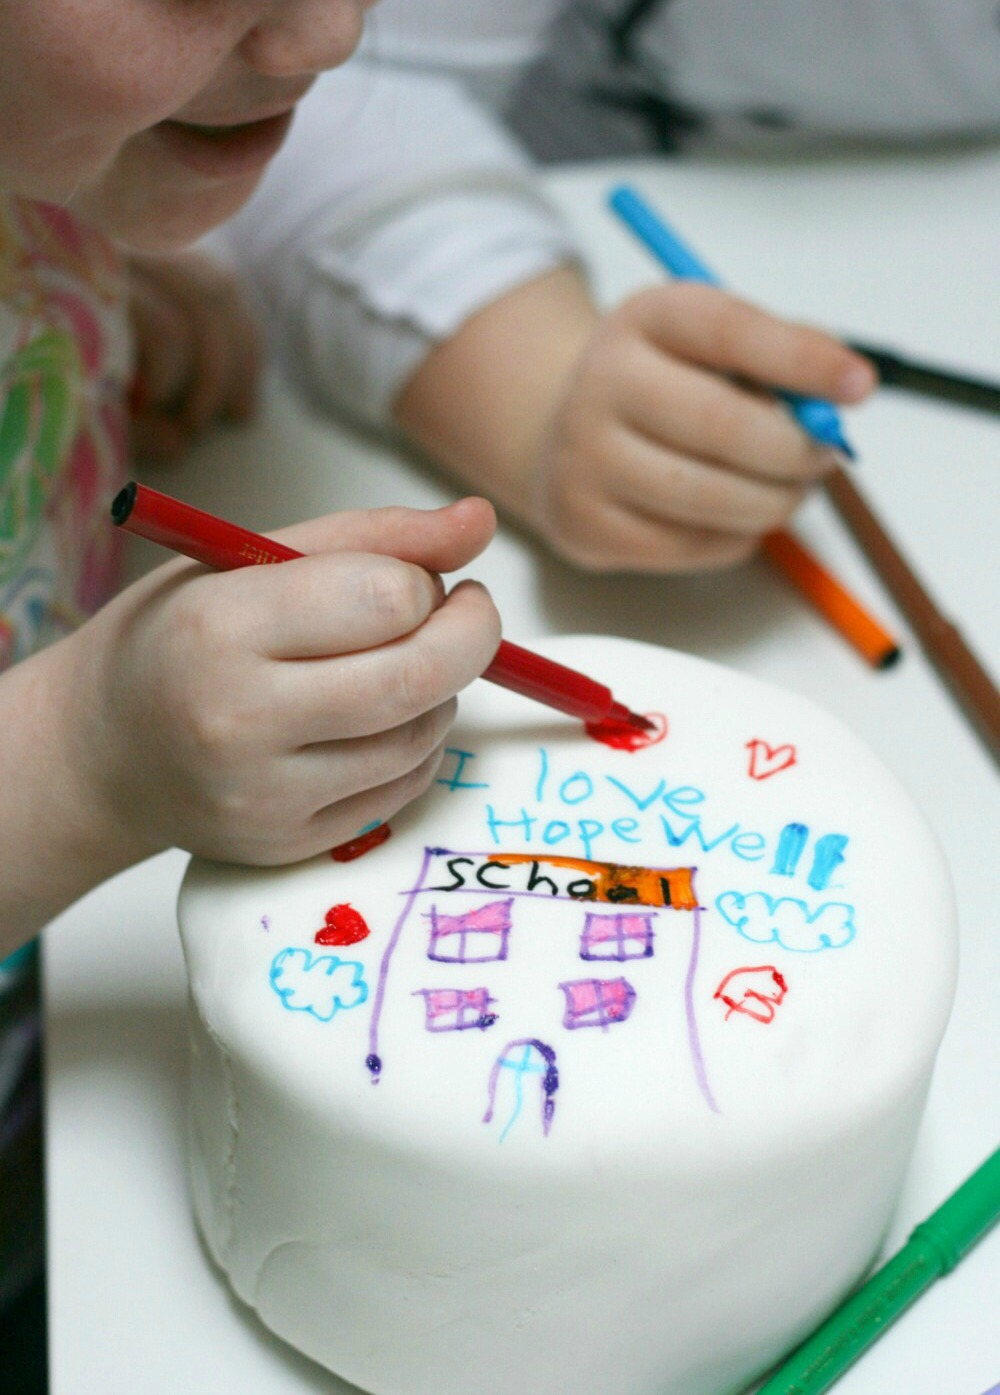 doodles and daydreams cake